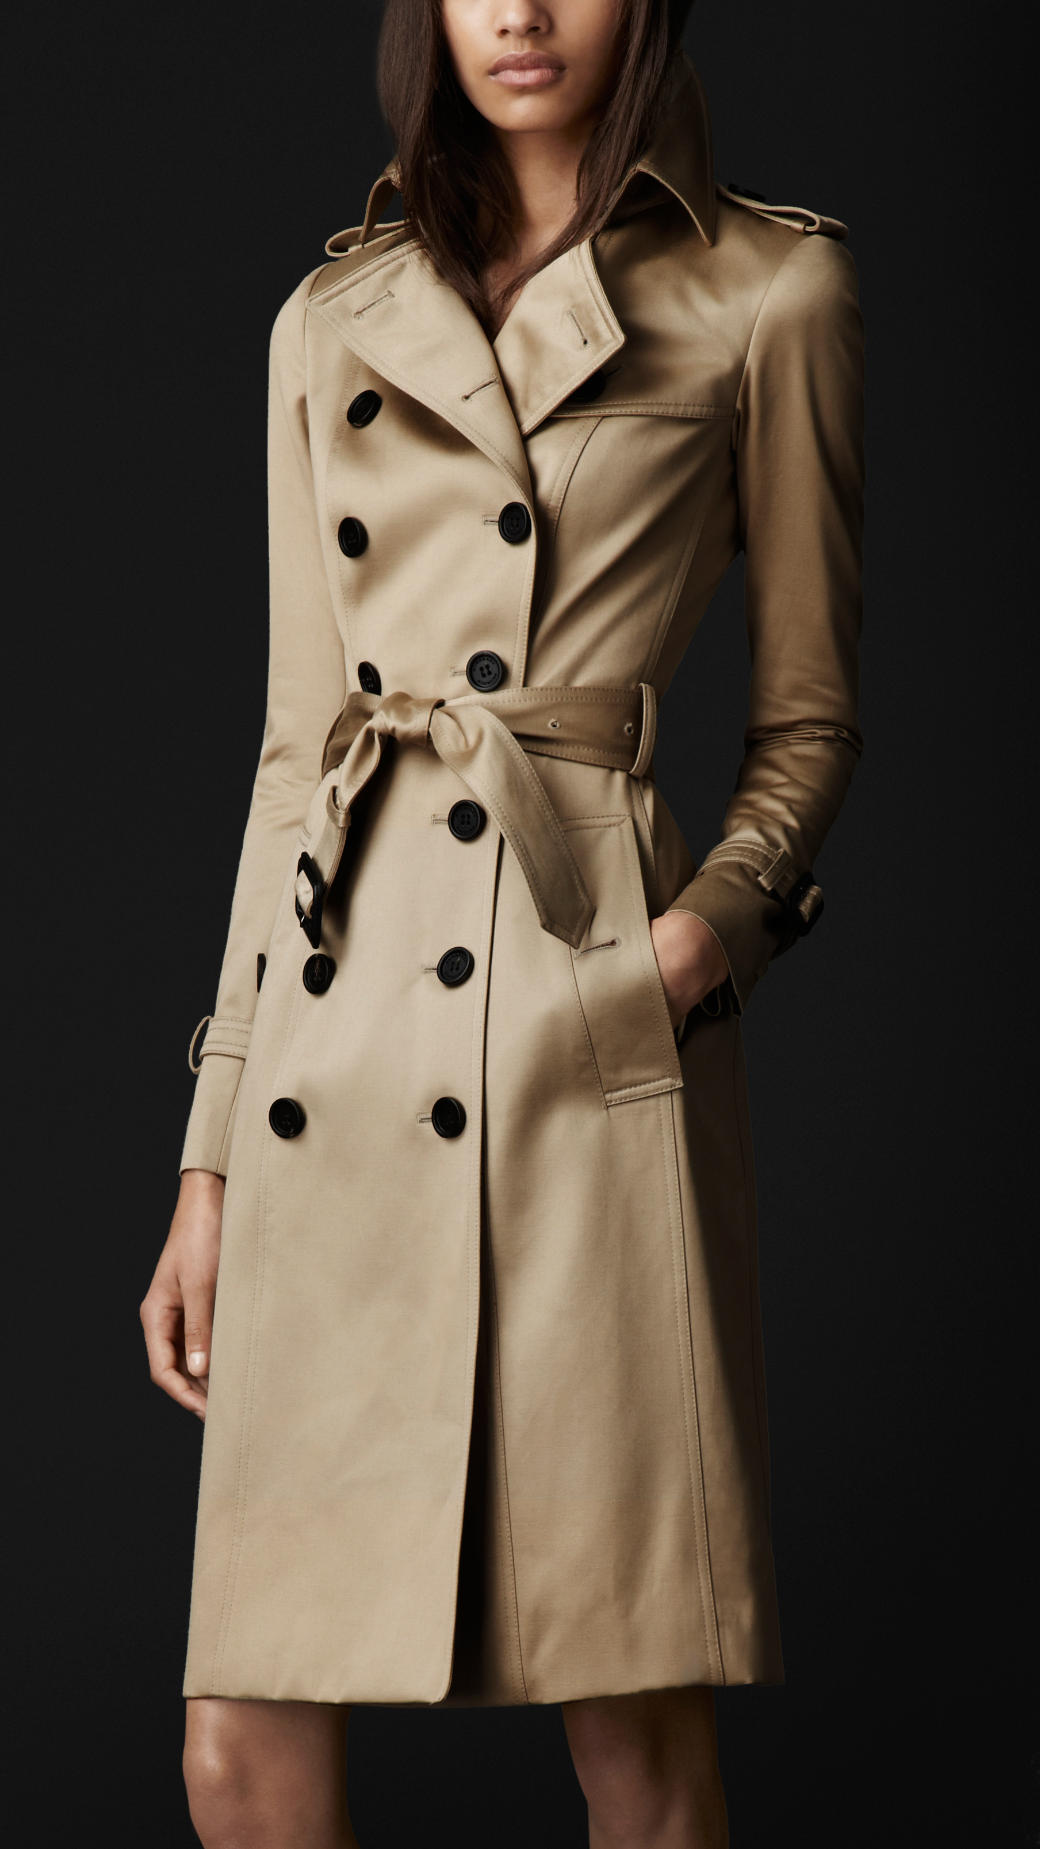 lyst burberry prorsum long cotton sateen trench coat in natural. Black Bedroom Furniture Sets. Home Design Ideas